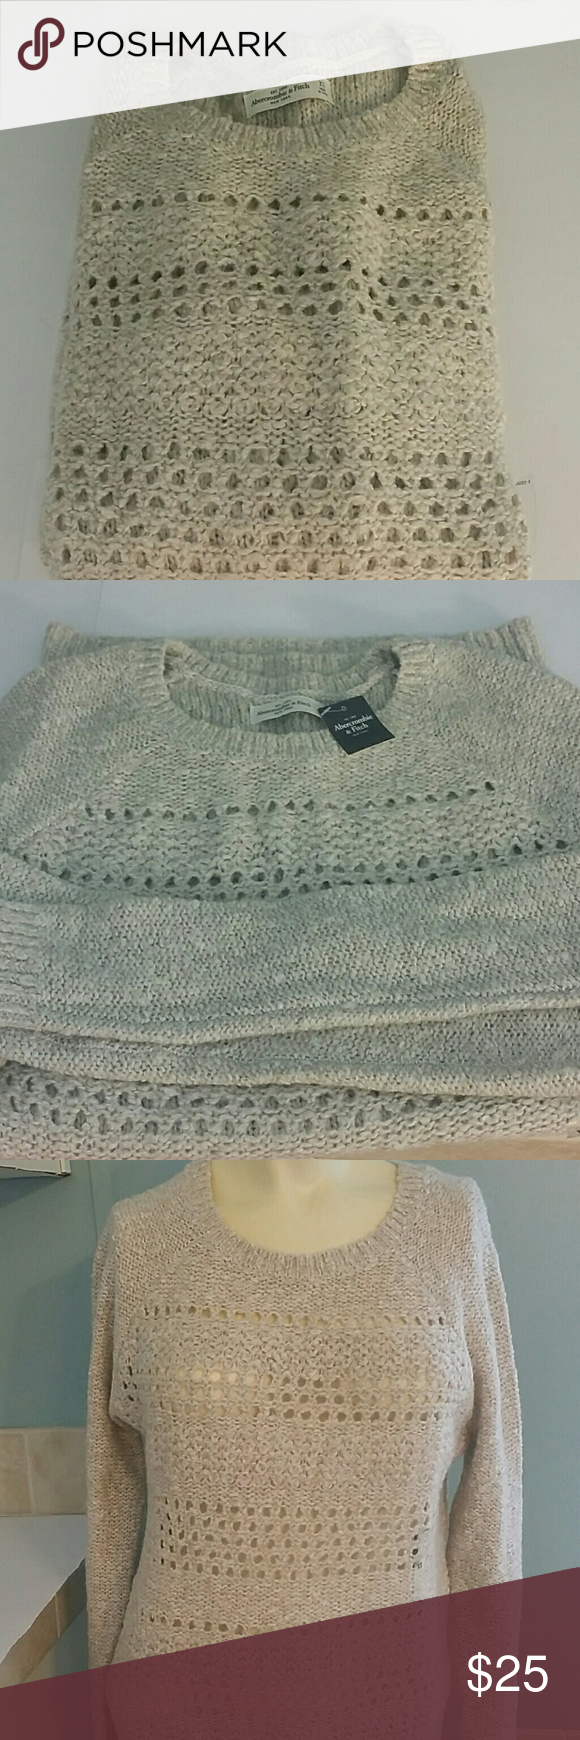 "NWT Abercrombie & Fitch sweater 29"" length  Sleeves 31"" length  Size is XS Abercrombie & Fitch Sweaters"